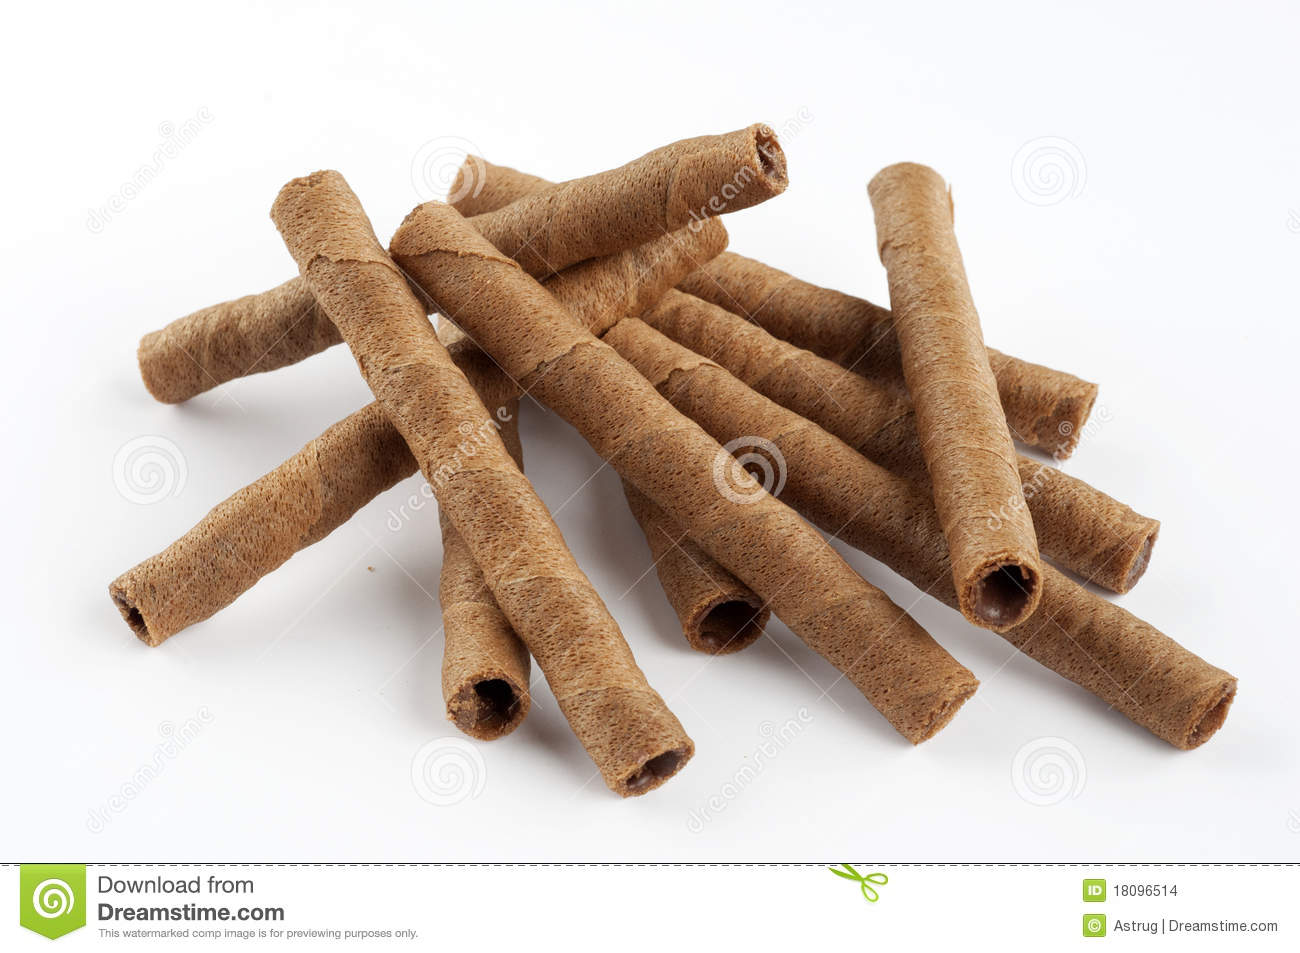 Chocolate Cigars Stock Photos, Images, & Pictures - 17 Images